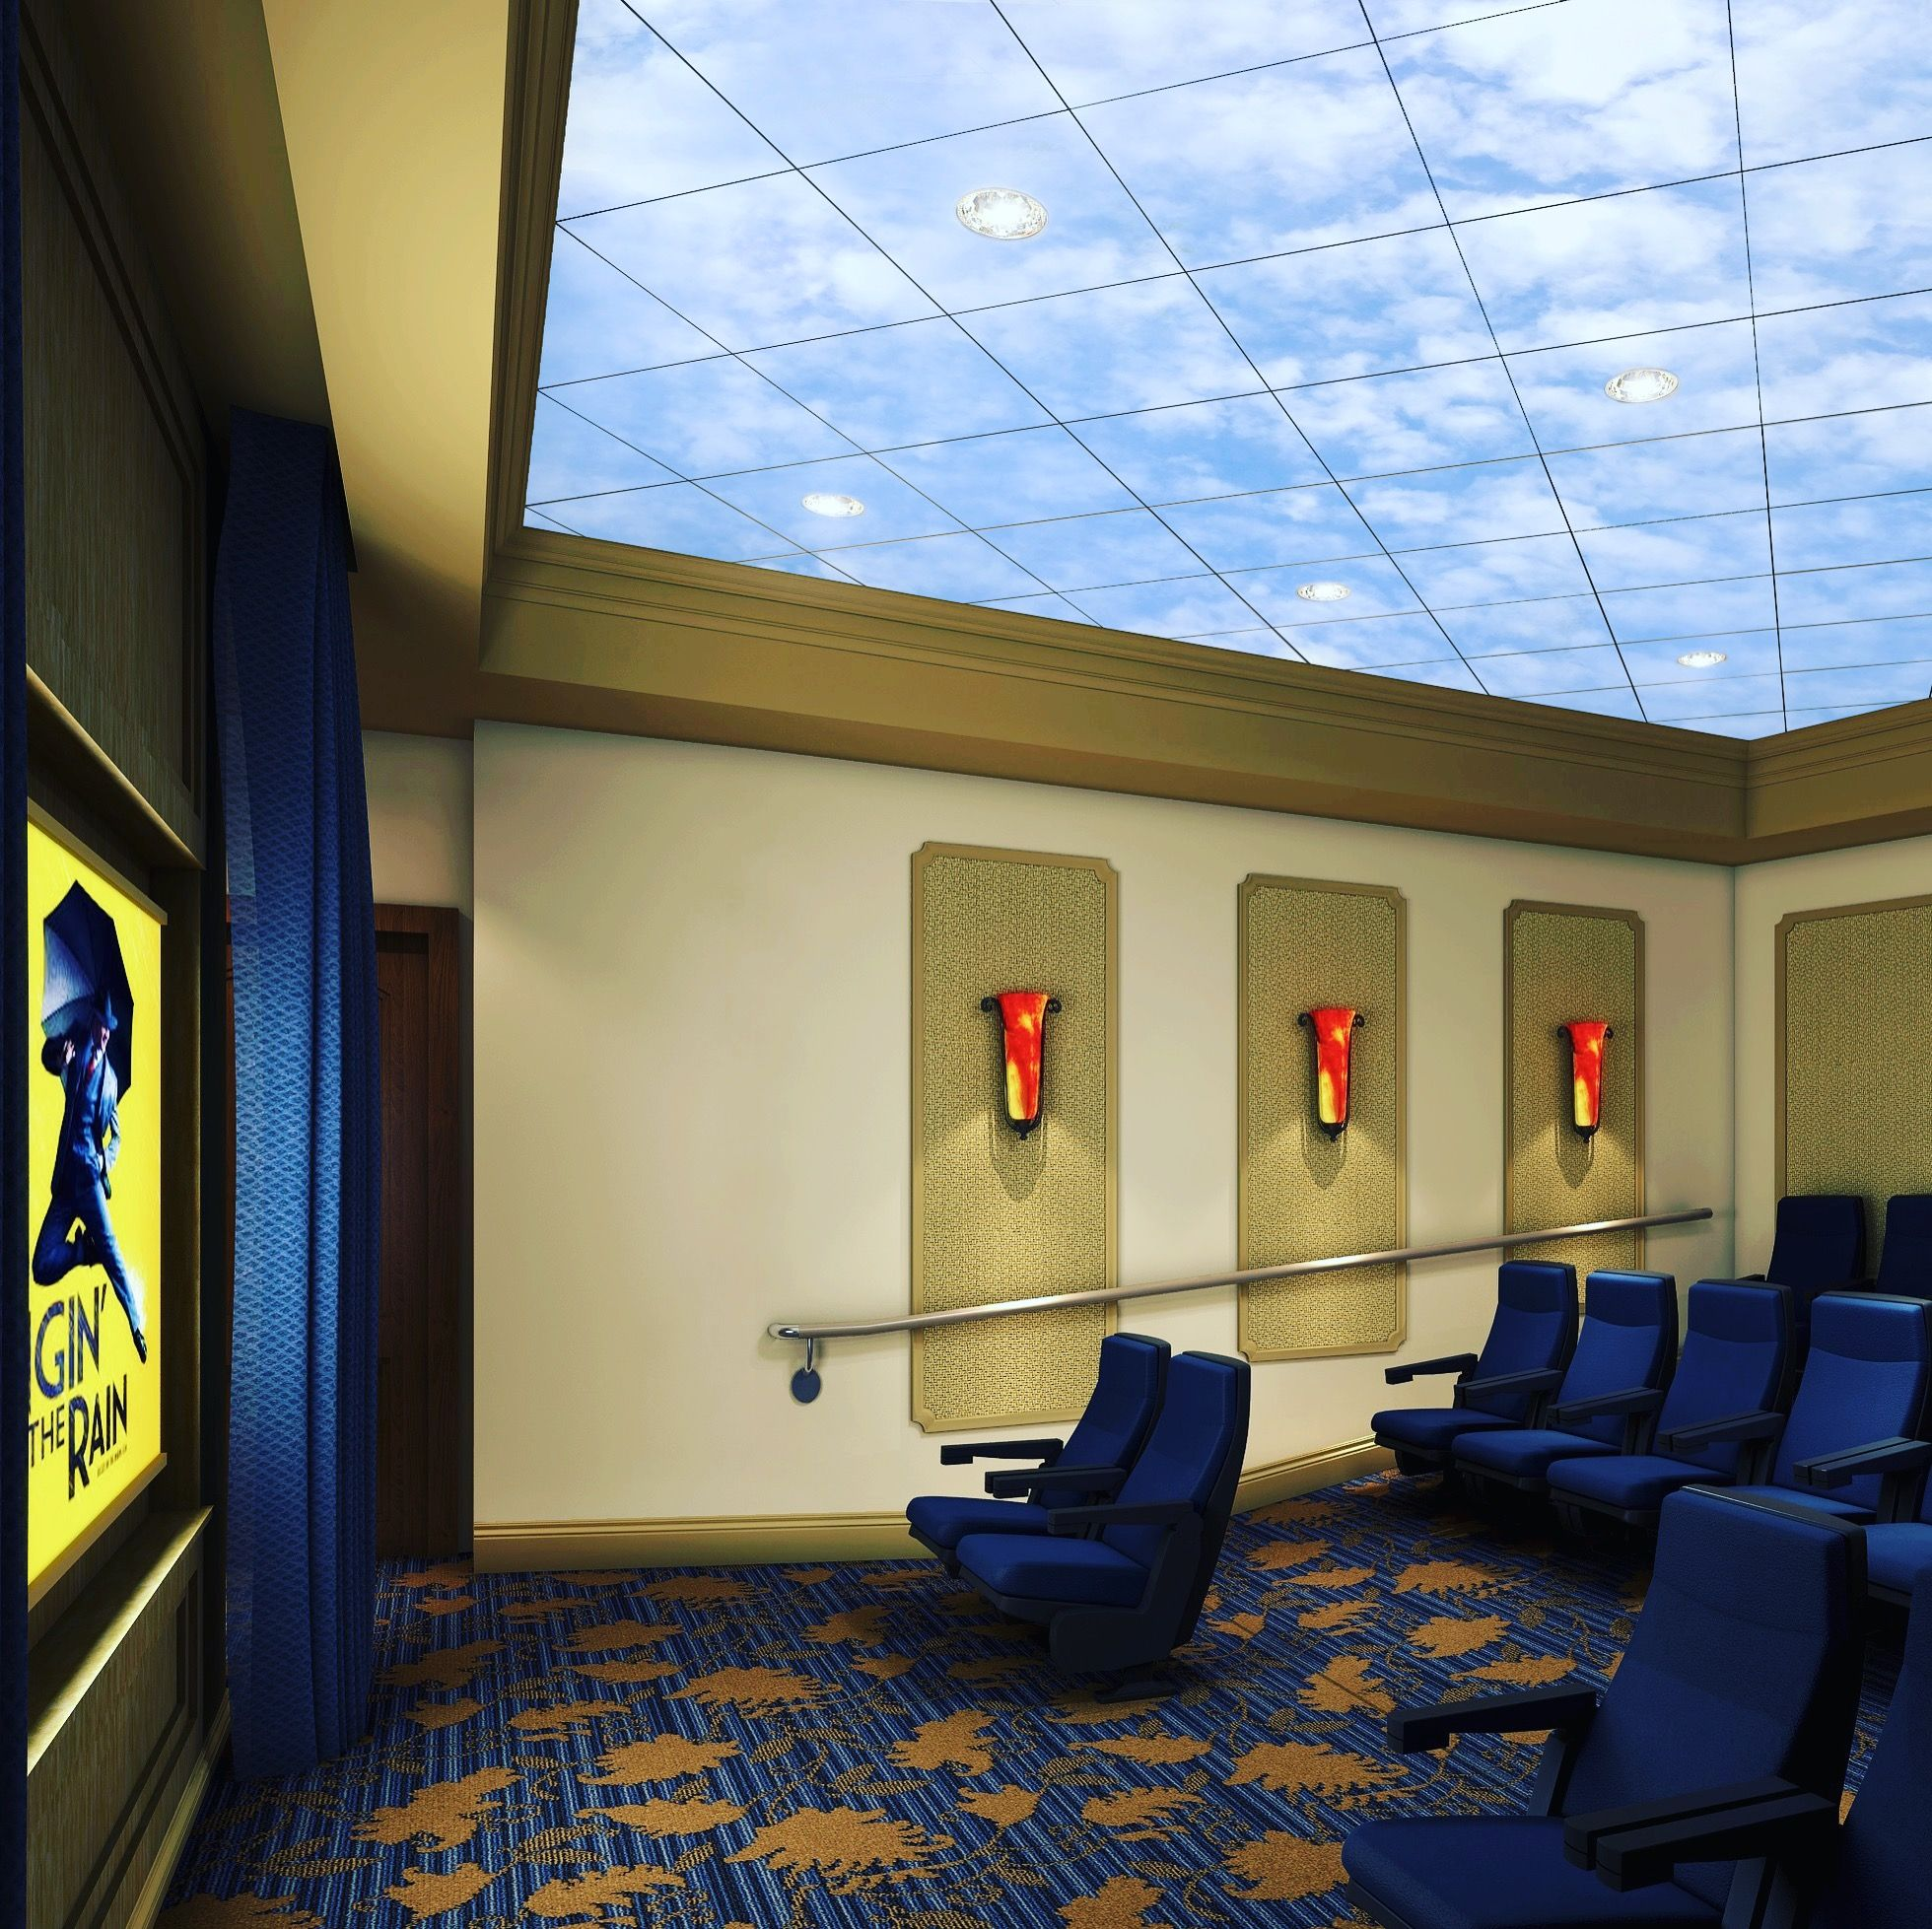 Movie theater ceiling tile artificial sky pinterest ceiling artificial sky worlds largest sky ceilings made from acoustic ceiling tiles led skylights and virtual sky ceiling panels for windowless environments dailygadgetfo Gallery